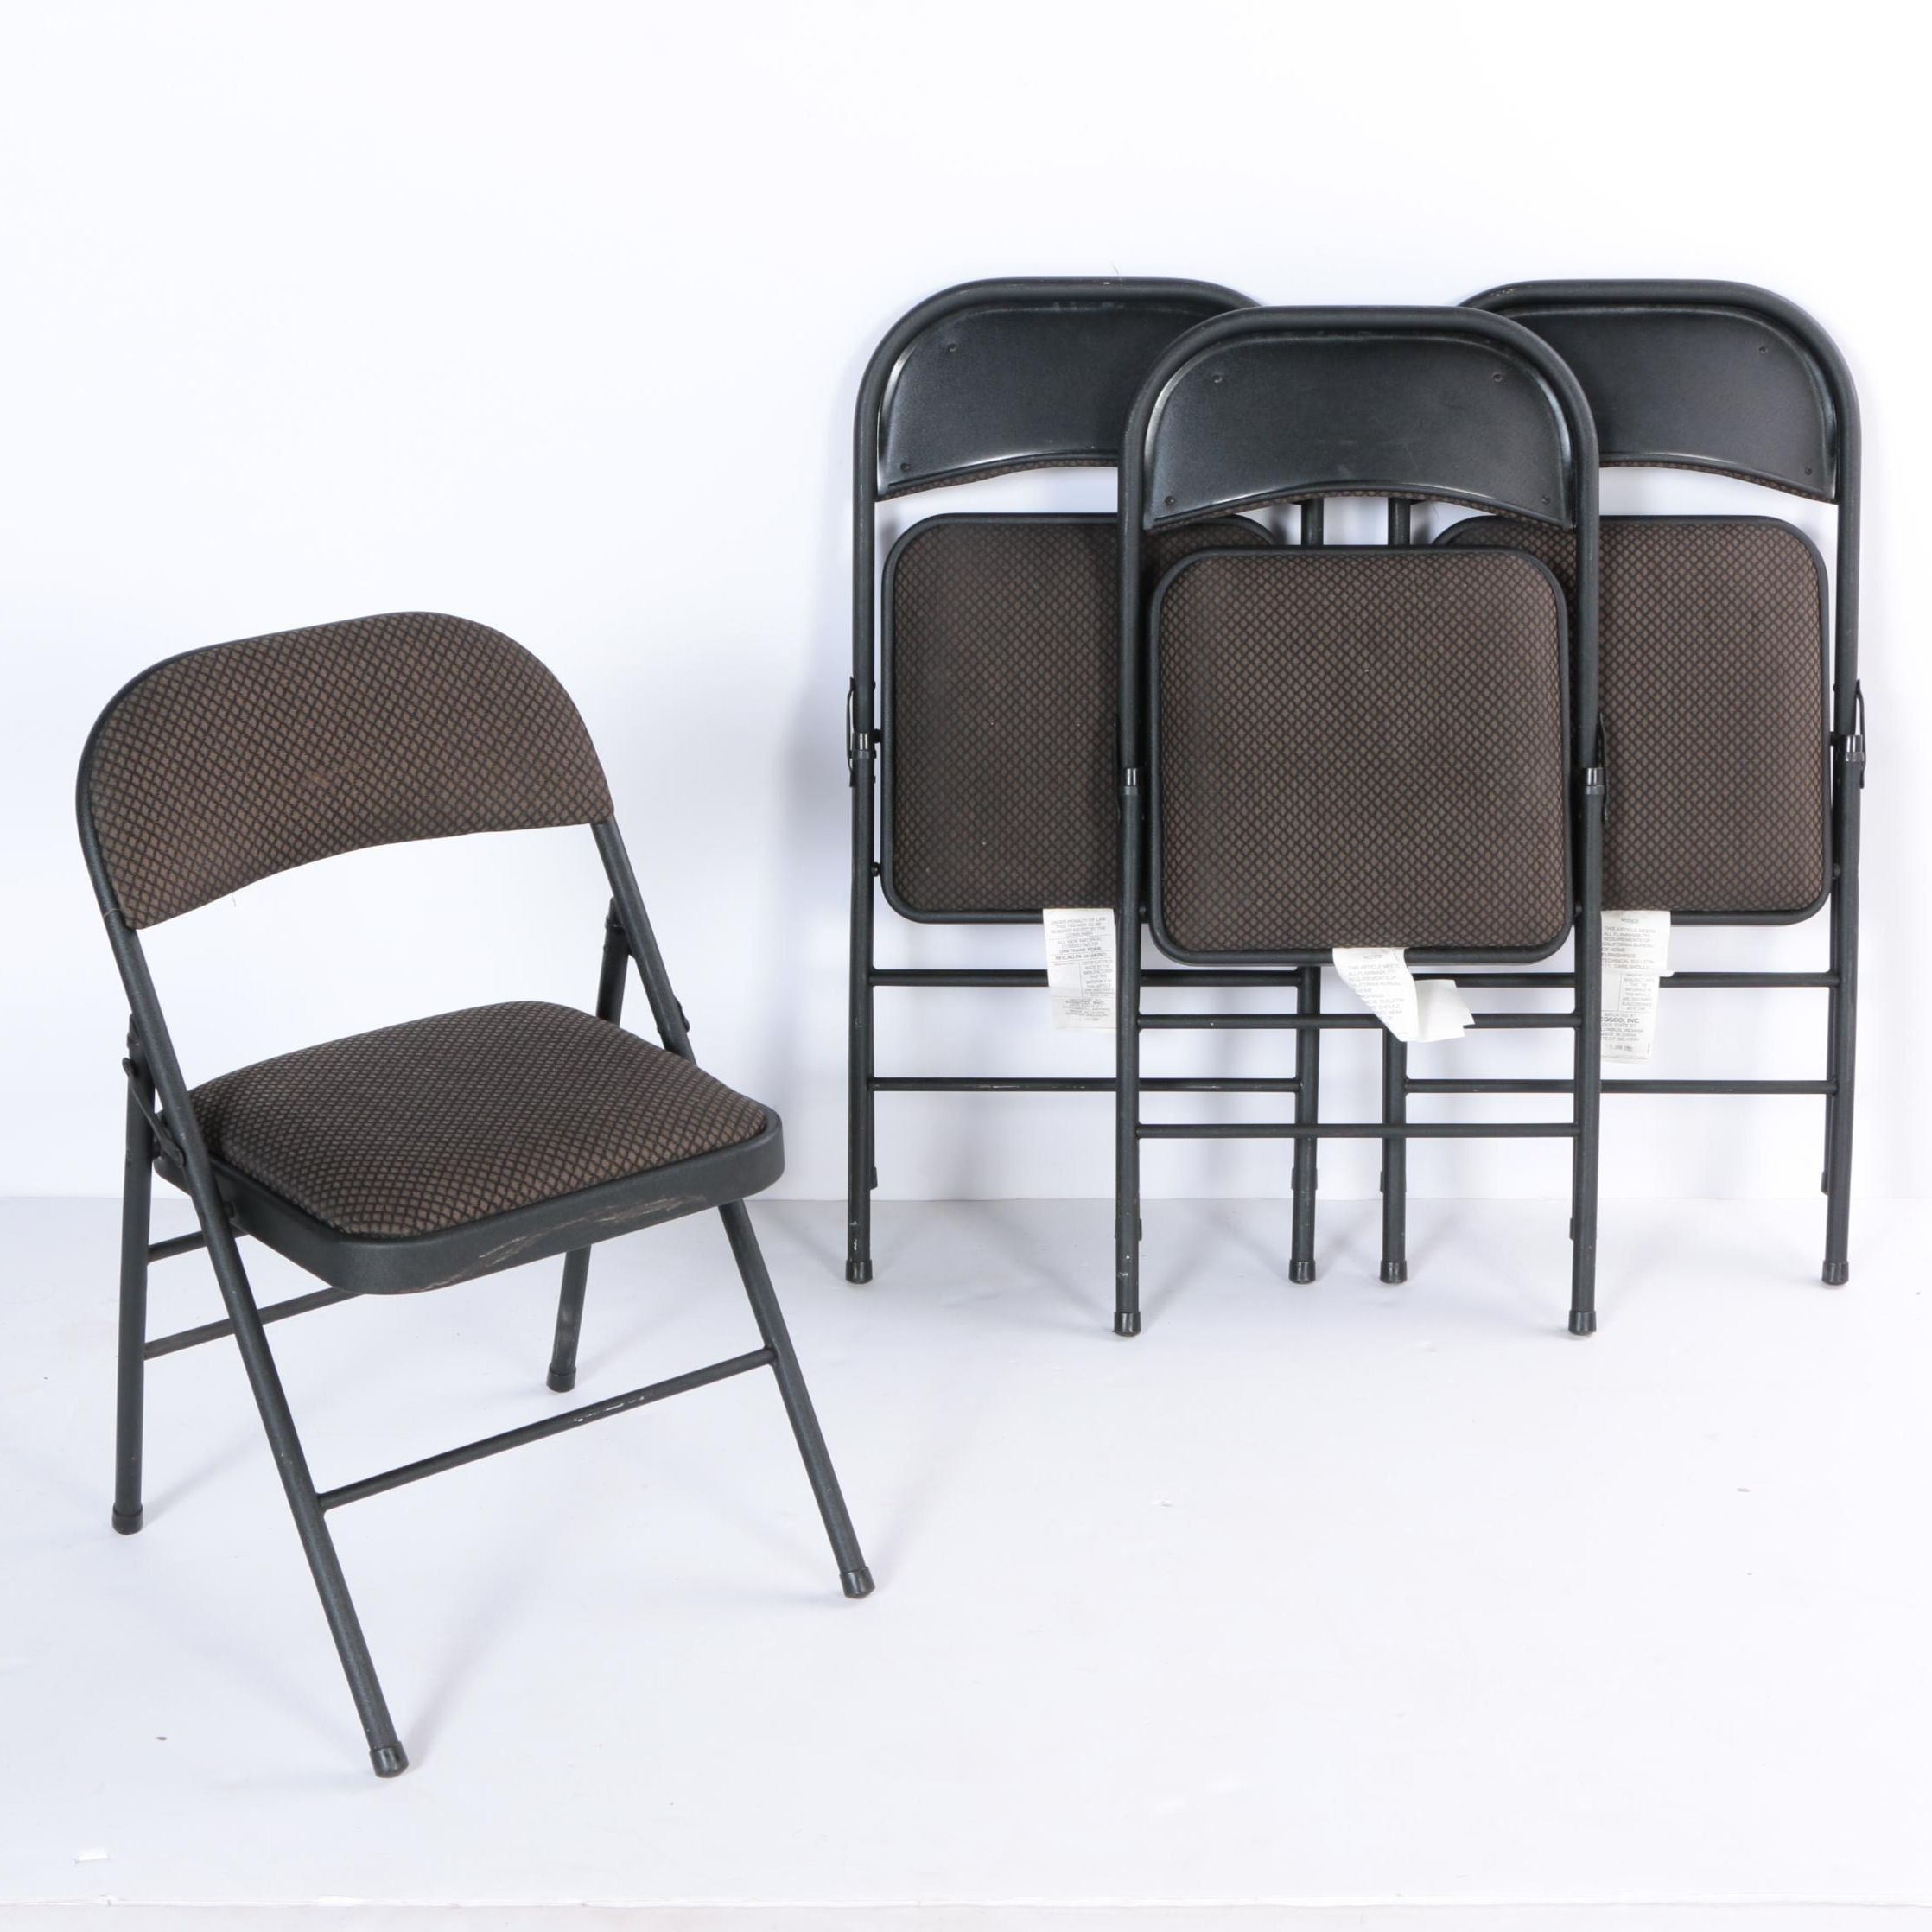 Four Padded Folding Chairs By Cosco ...